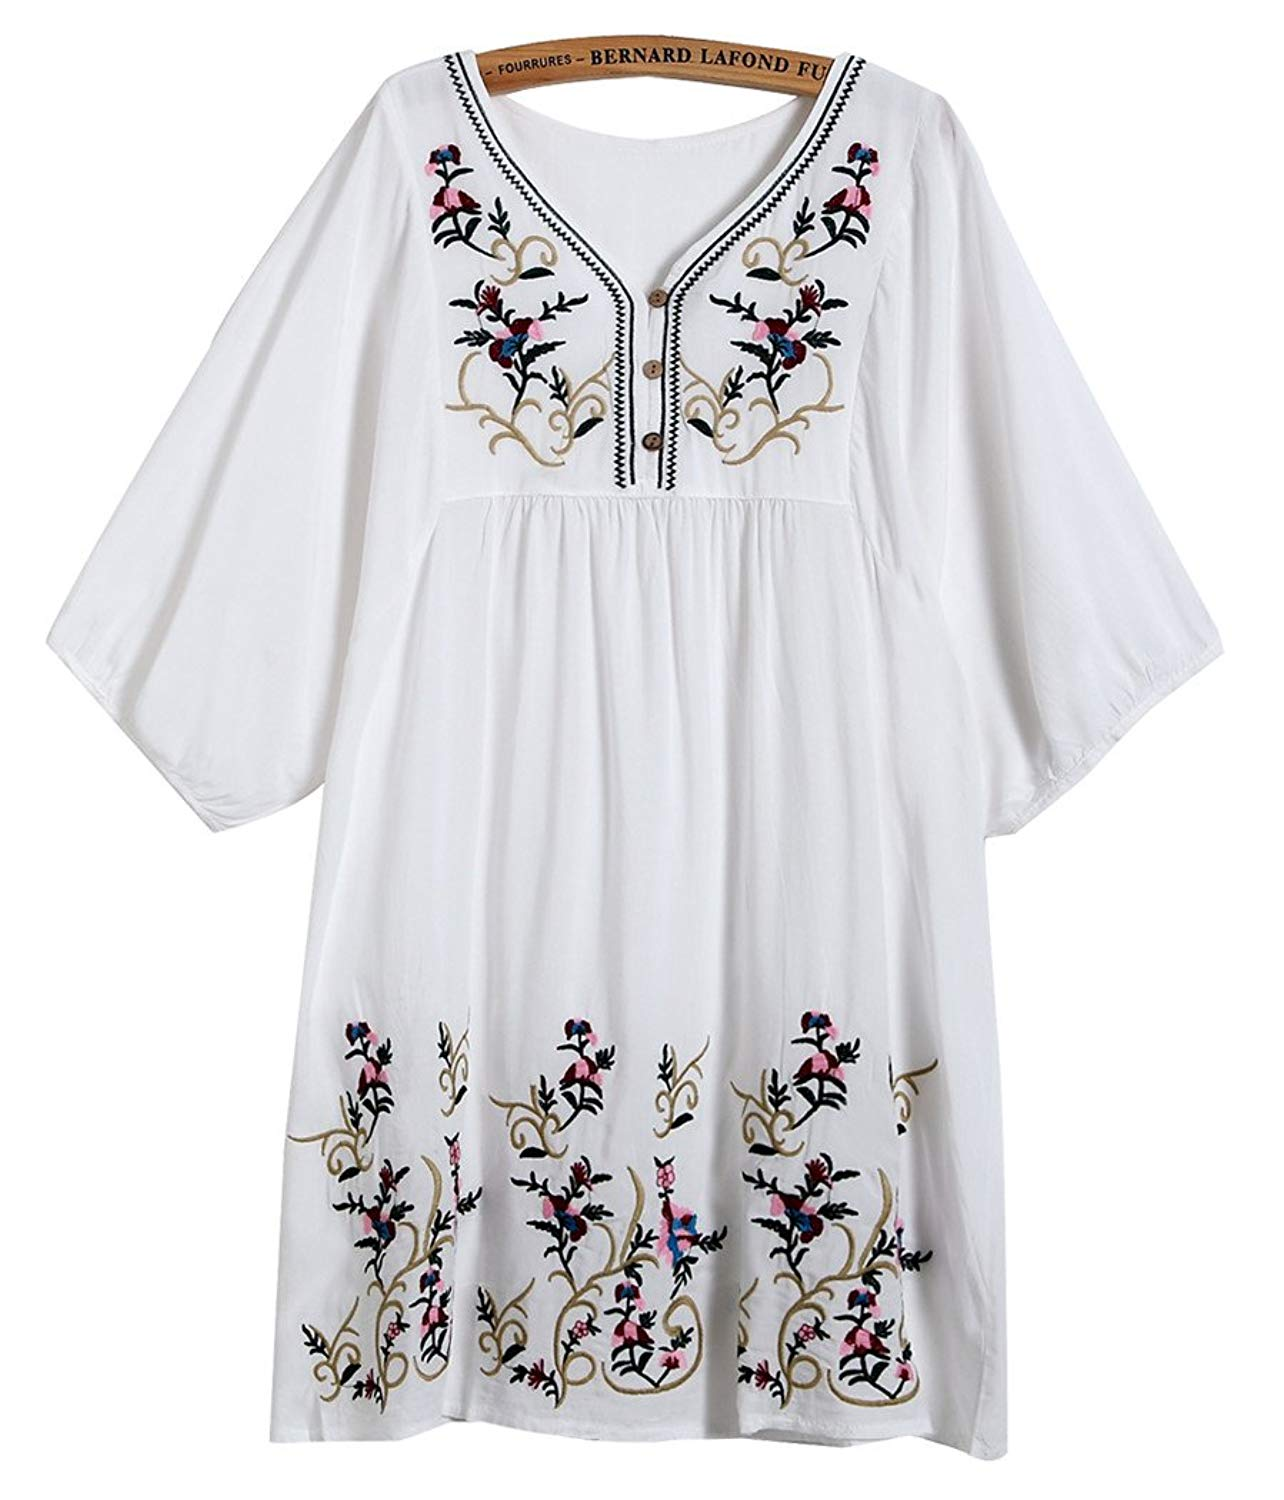 Kafeimali Women S T Shirt Tunic Dresses Mexican Embroidered Peasant Tops Blouses